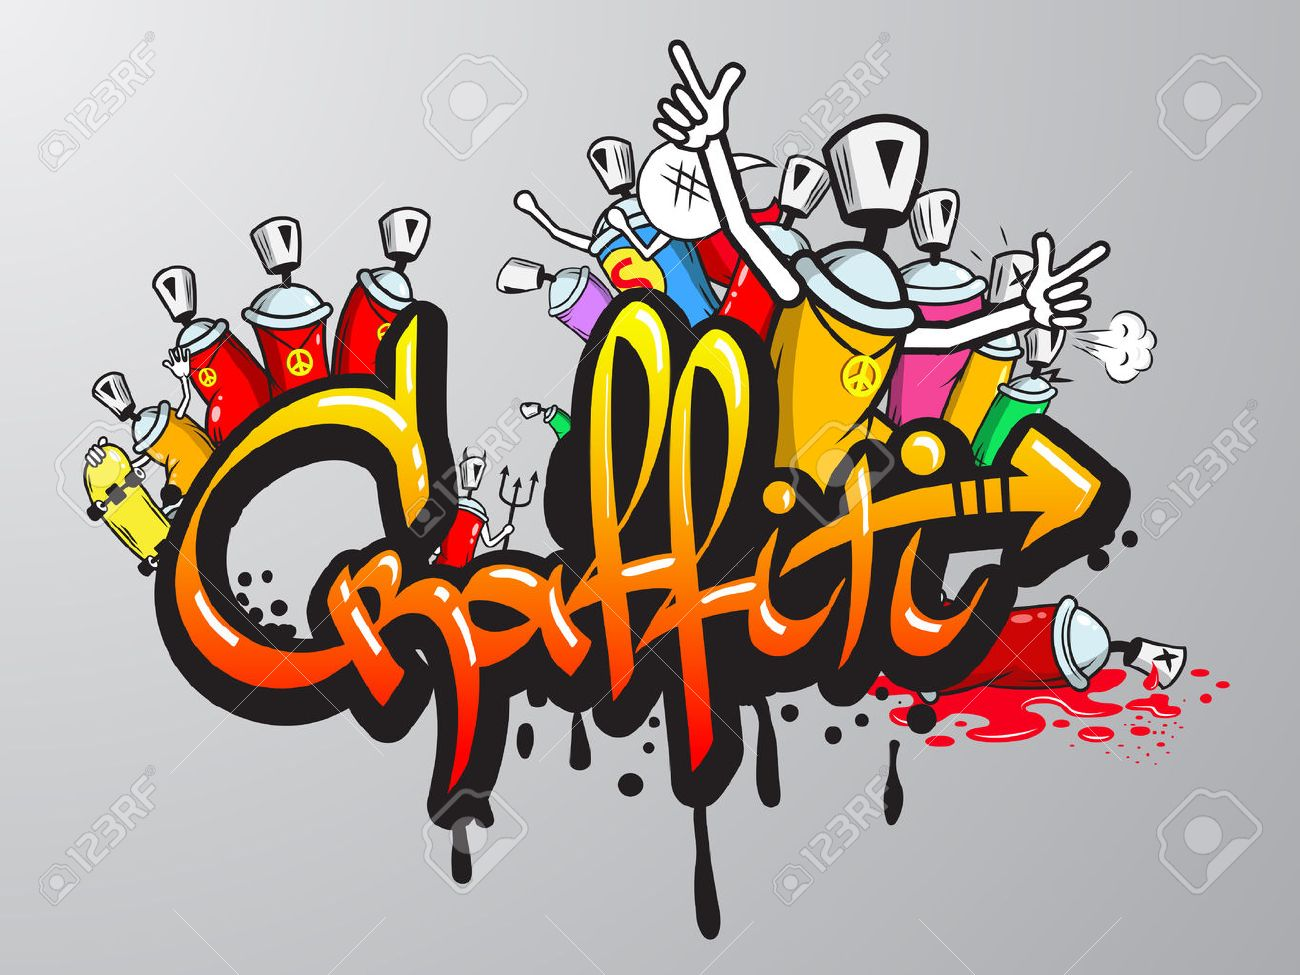 Graffiti Art Characters Spray Can Decorative Graffiti Art Spray